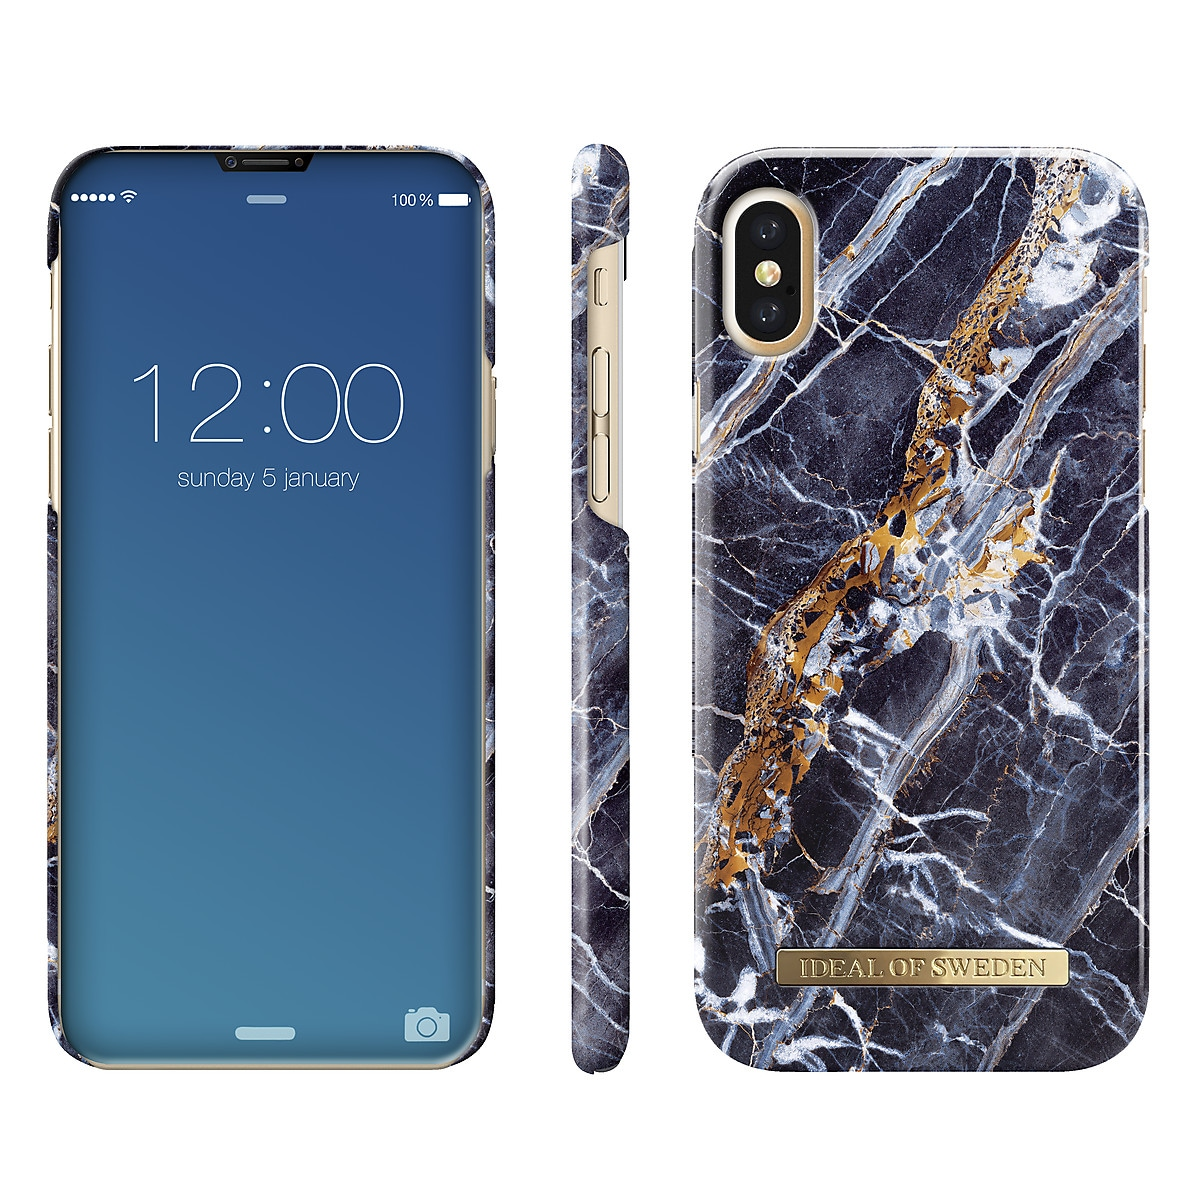 iDeal of Sweden Mobile Phone Case for iPhone X